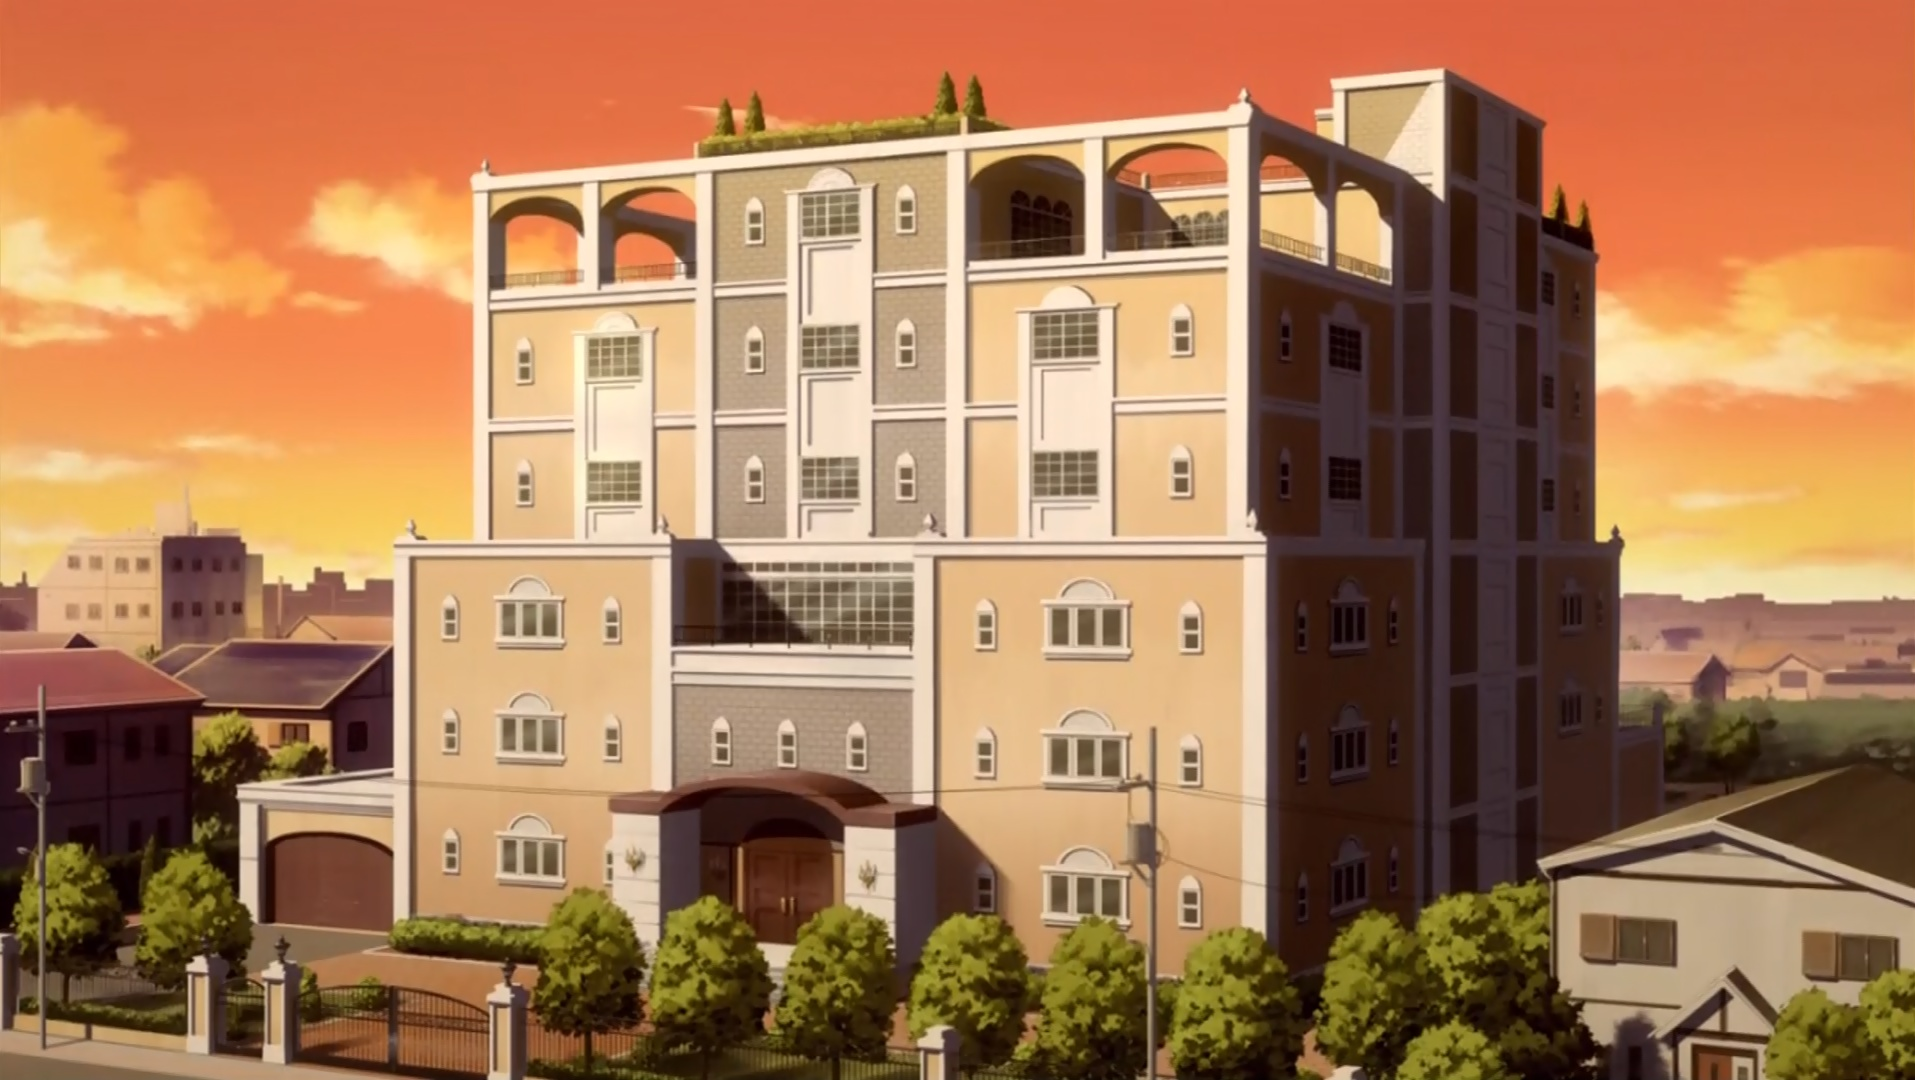 Anime dream home anime for the people disqus thumbnail voltagebd Choice Image